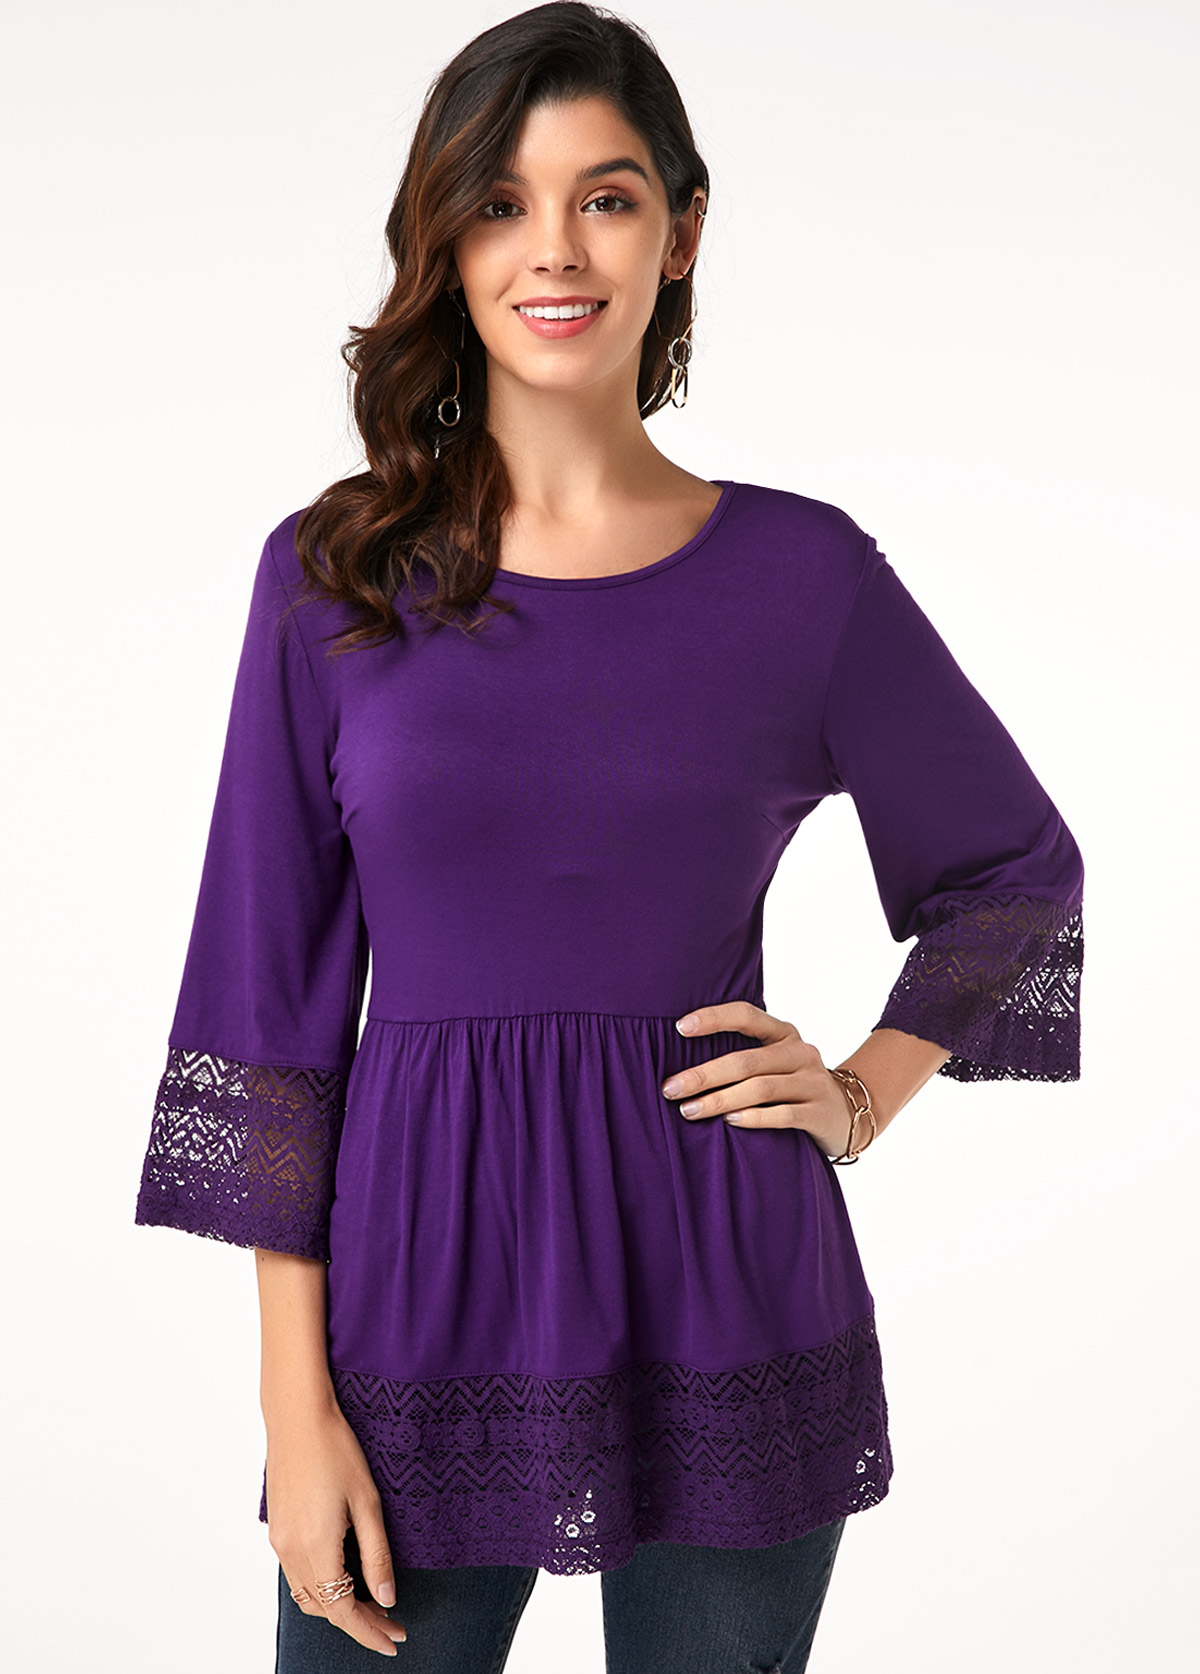 Lacel Panel Flare Sleeve Purple T Shirt